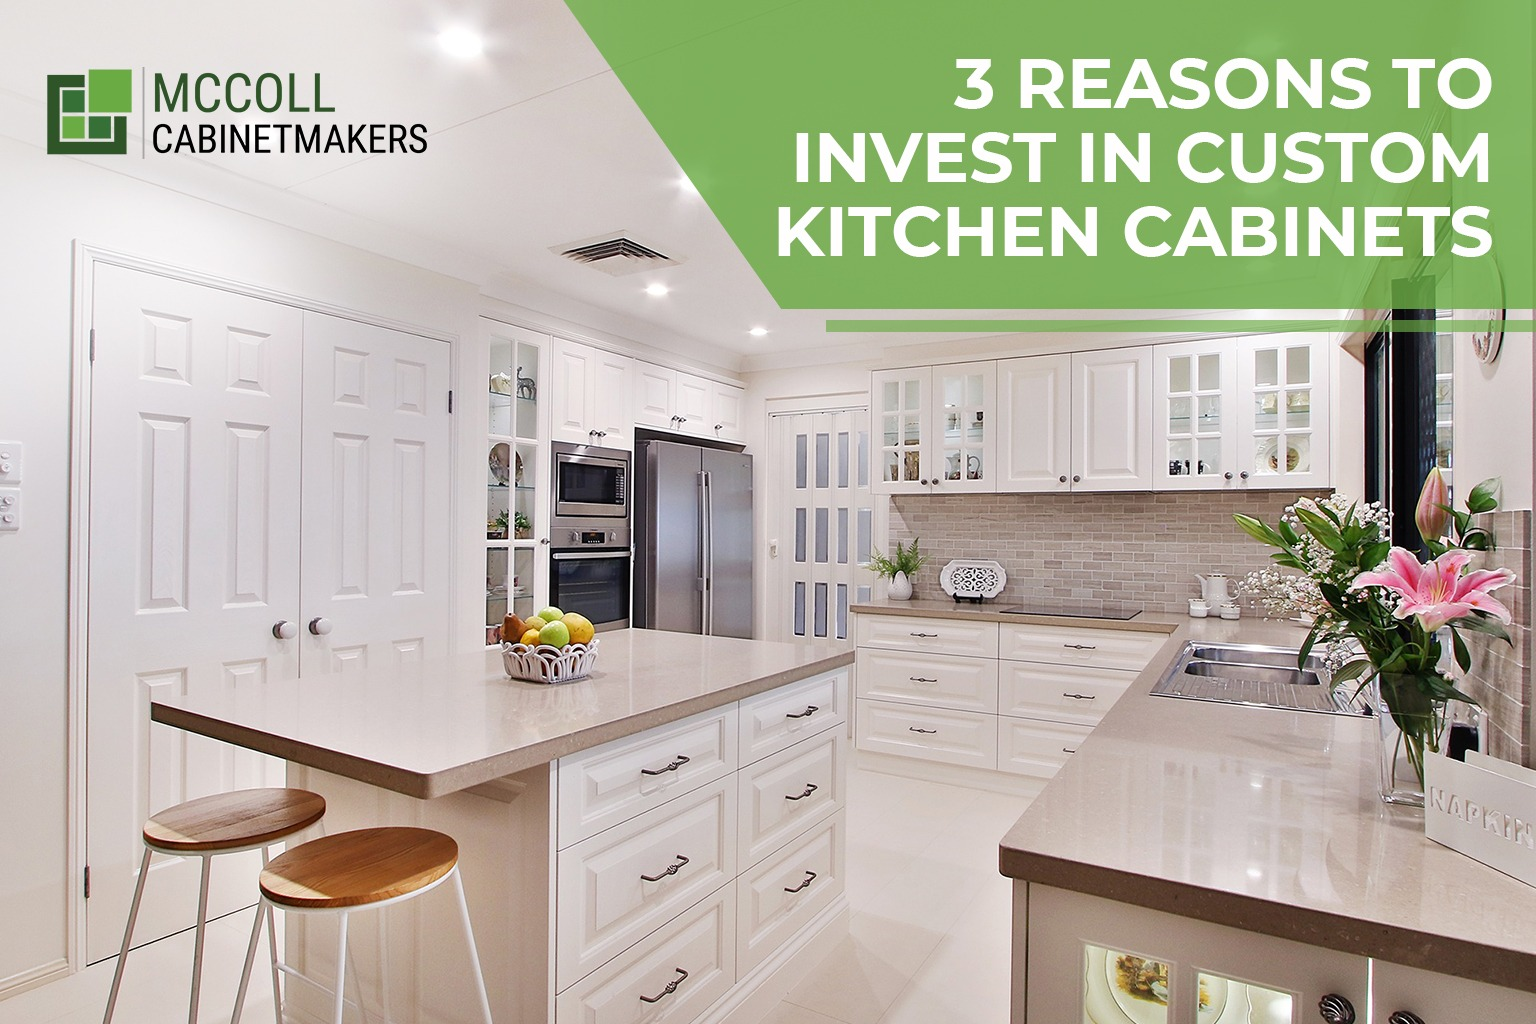 3 Reasons to Invest in Custom Kitchen Cabinets